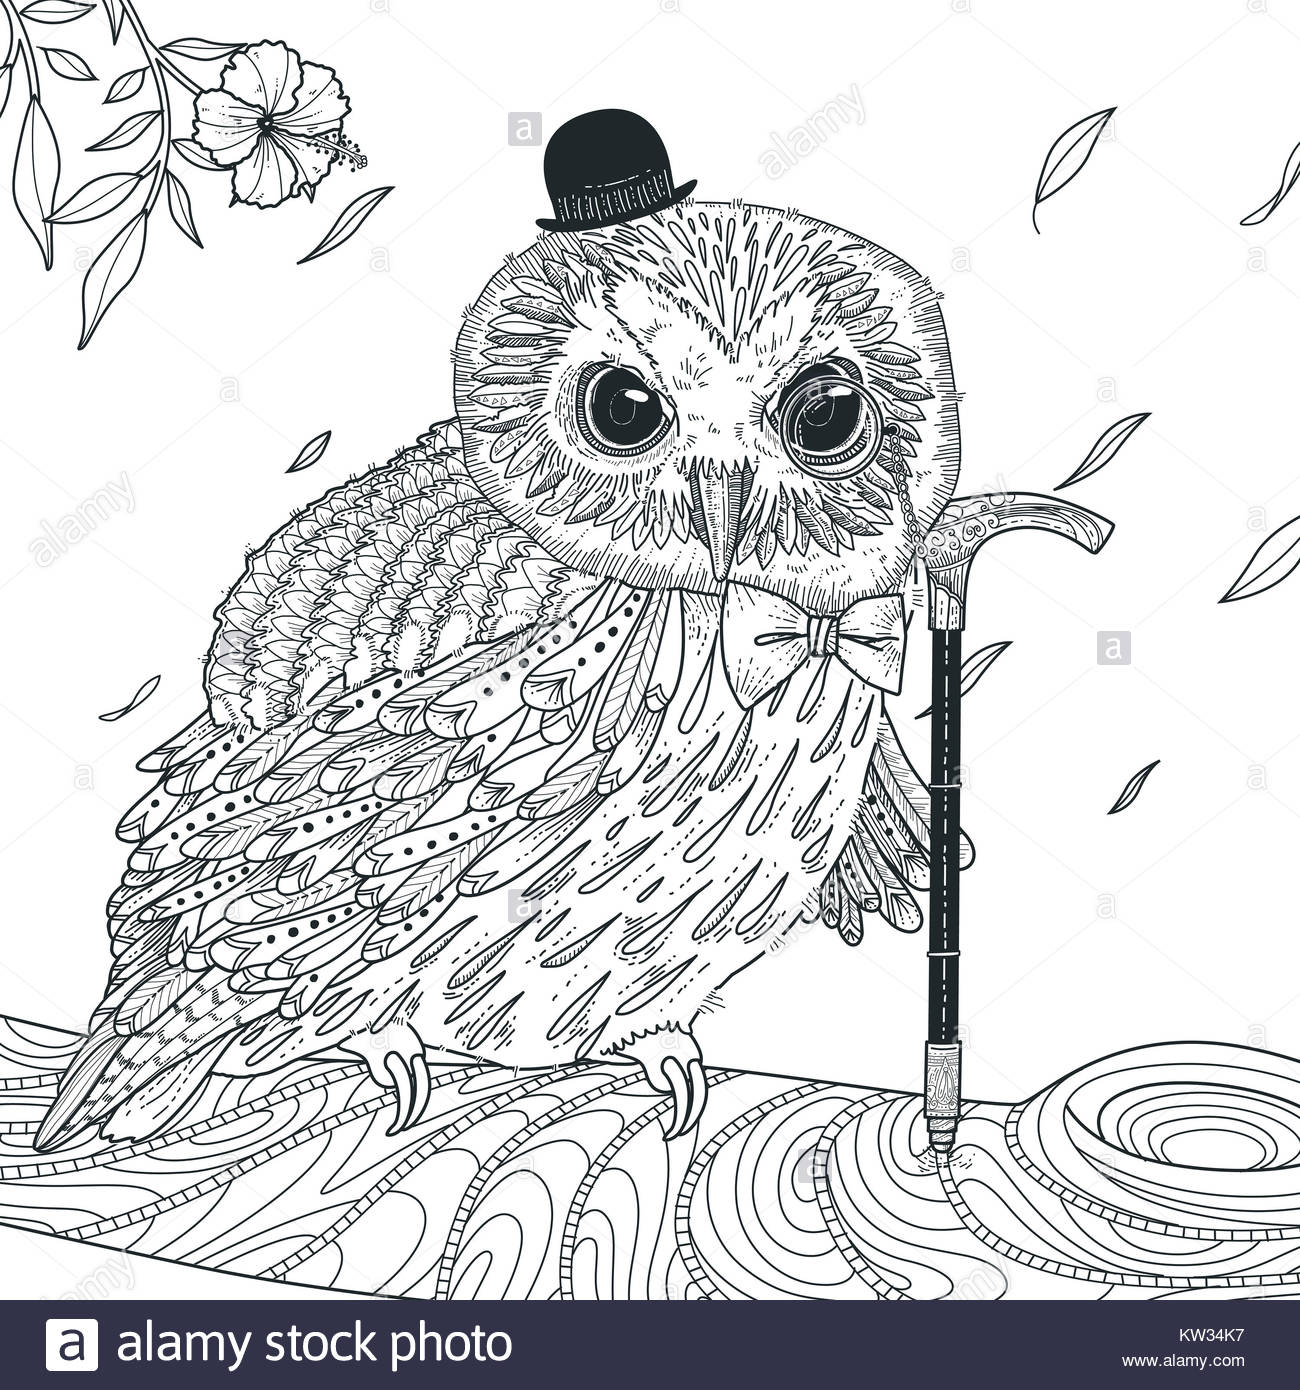 Adorable Owl Coloring Page In Exquisite Style